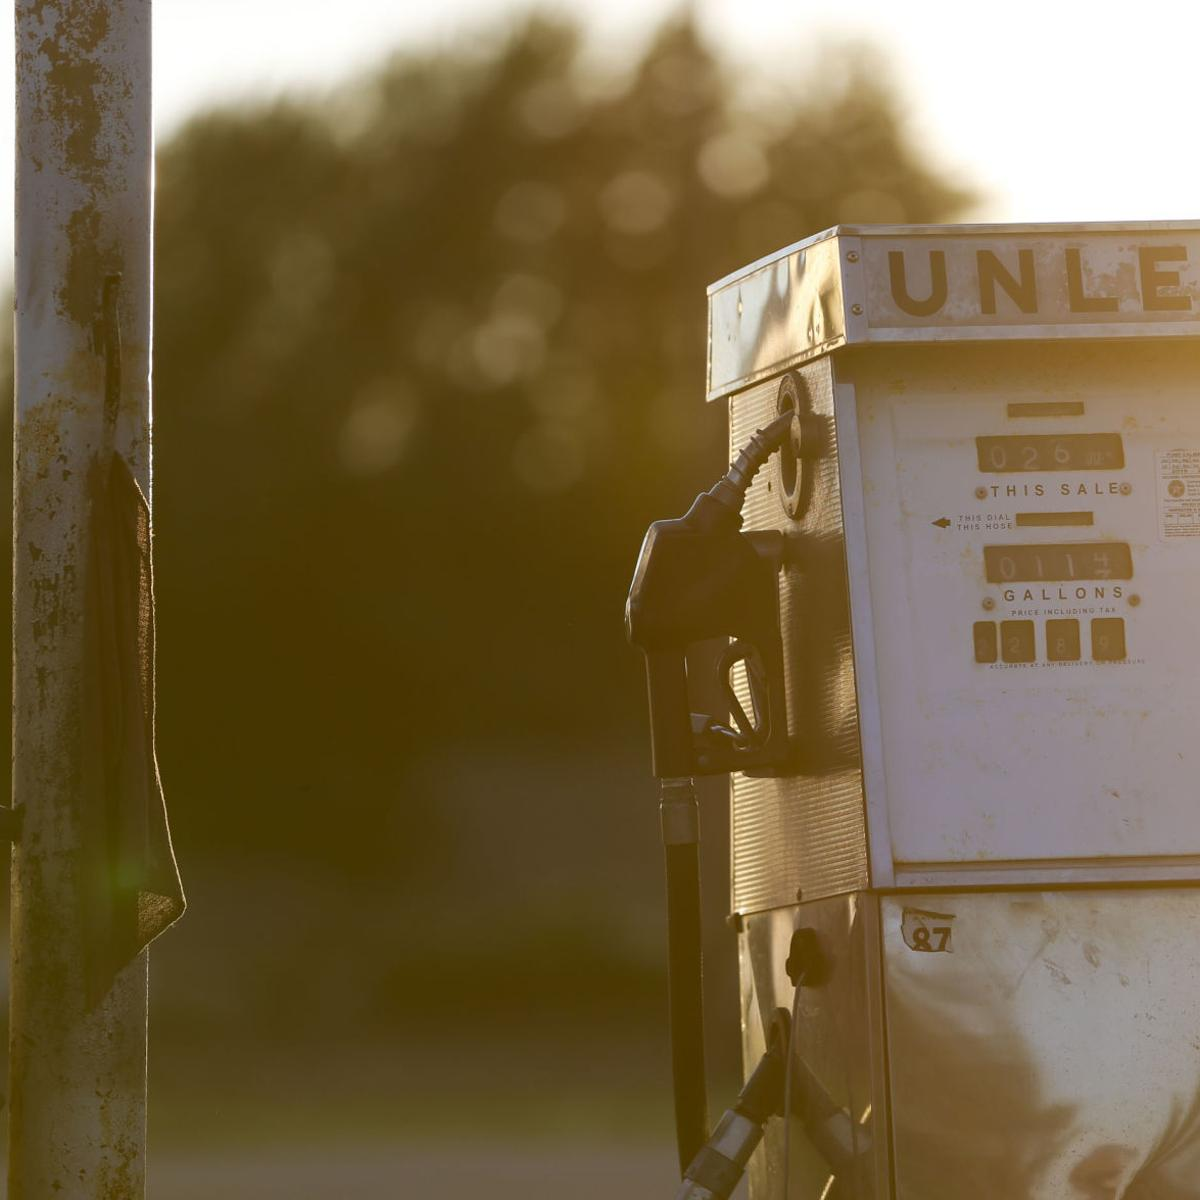 Gas Prices Okc >> Letter To The Editor Gas Prices Between Tulsa And Okc Make